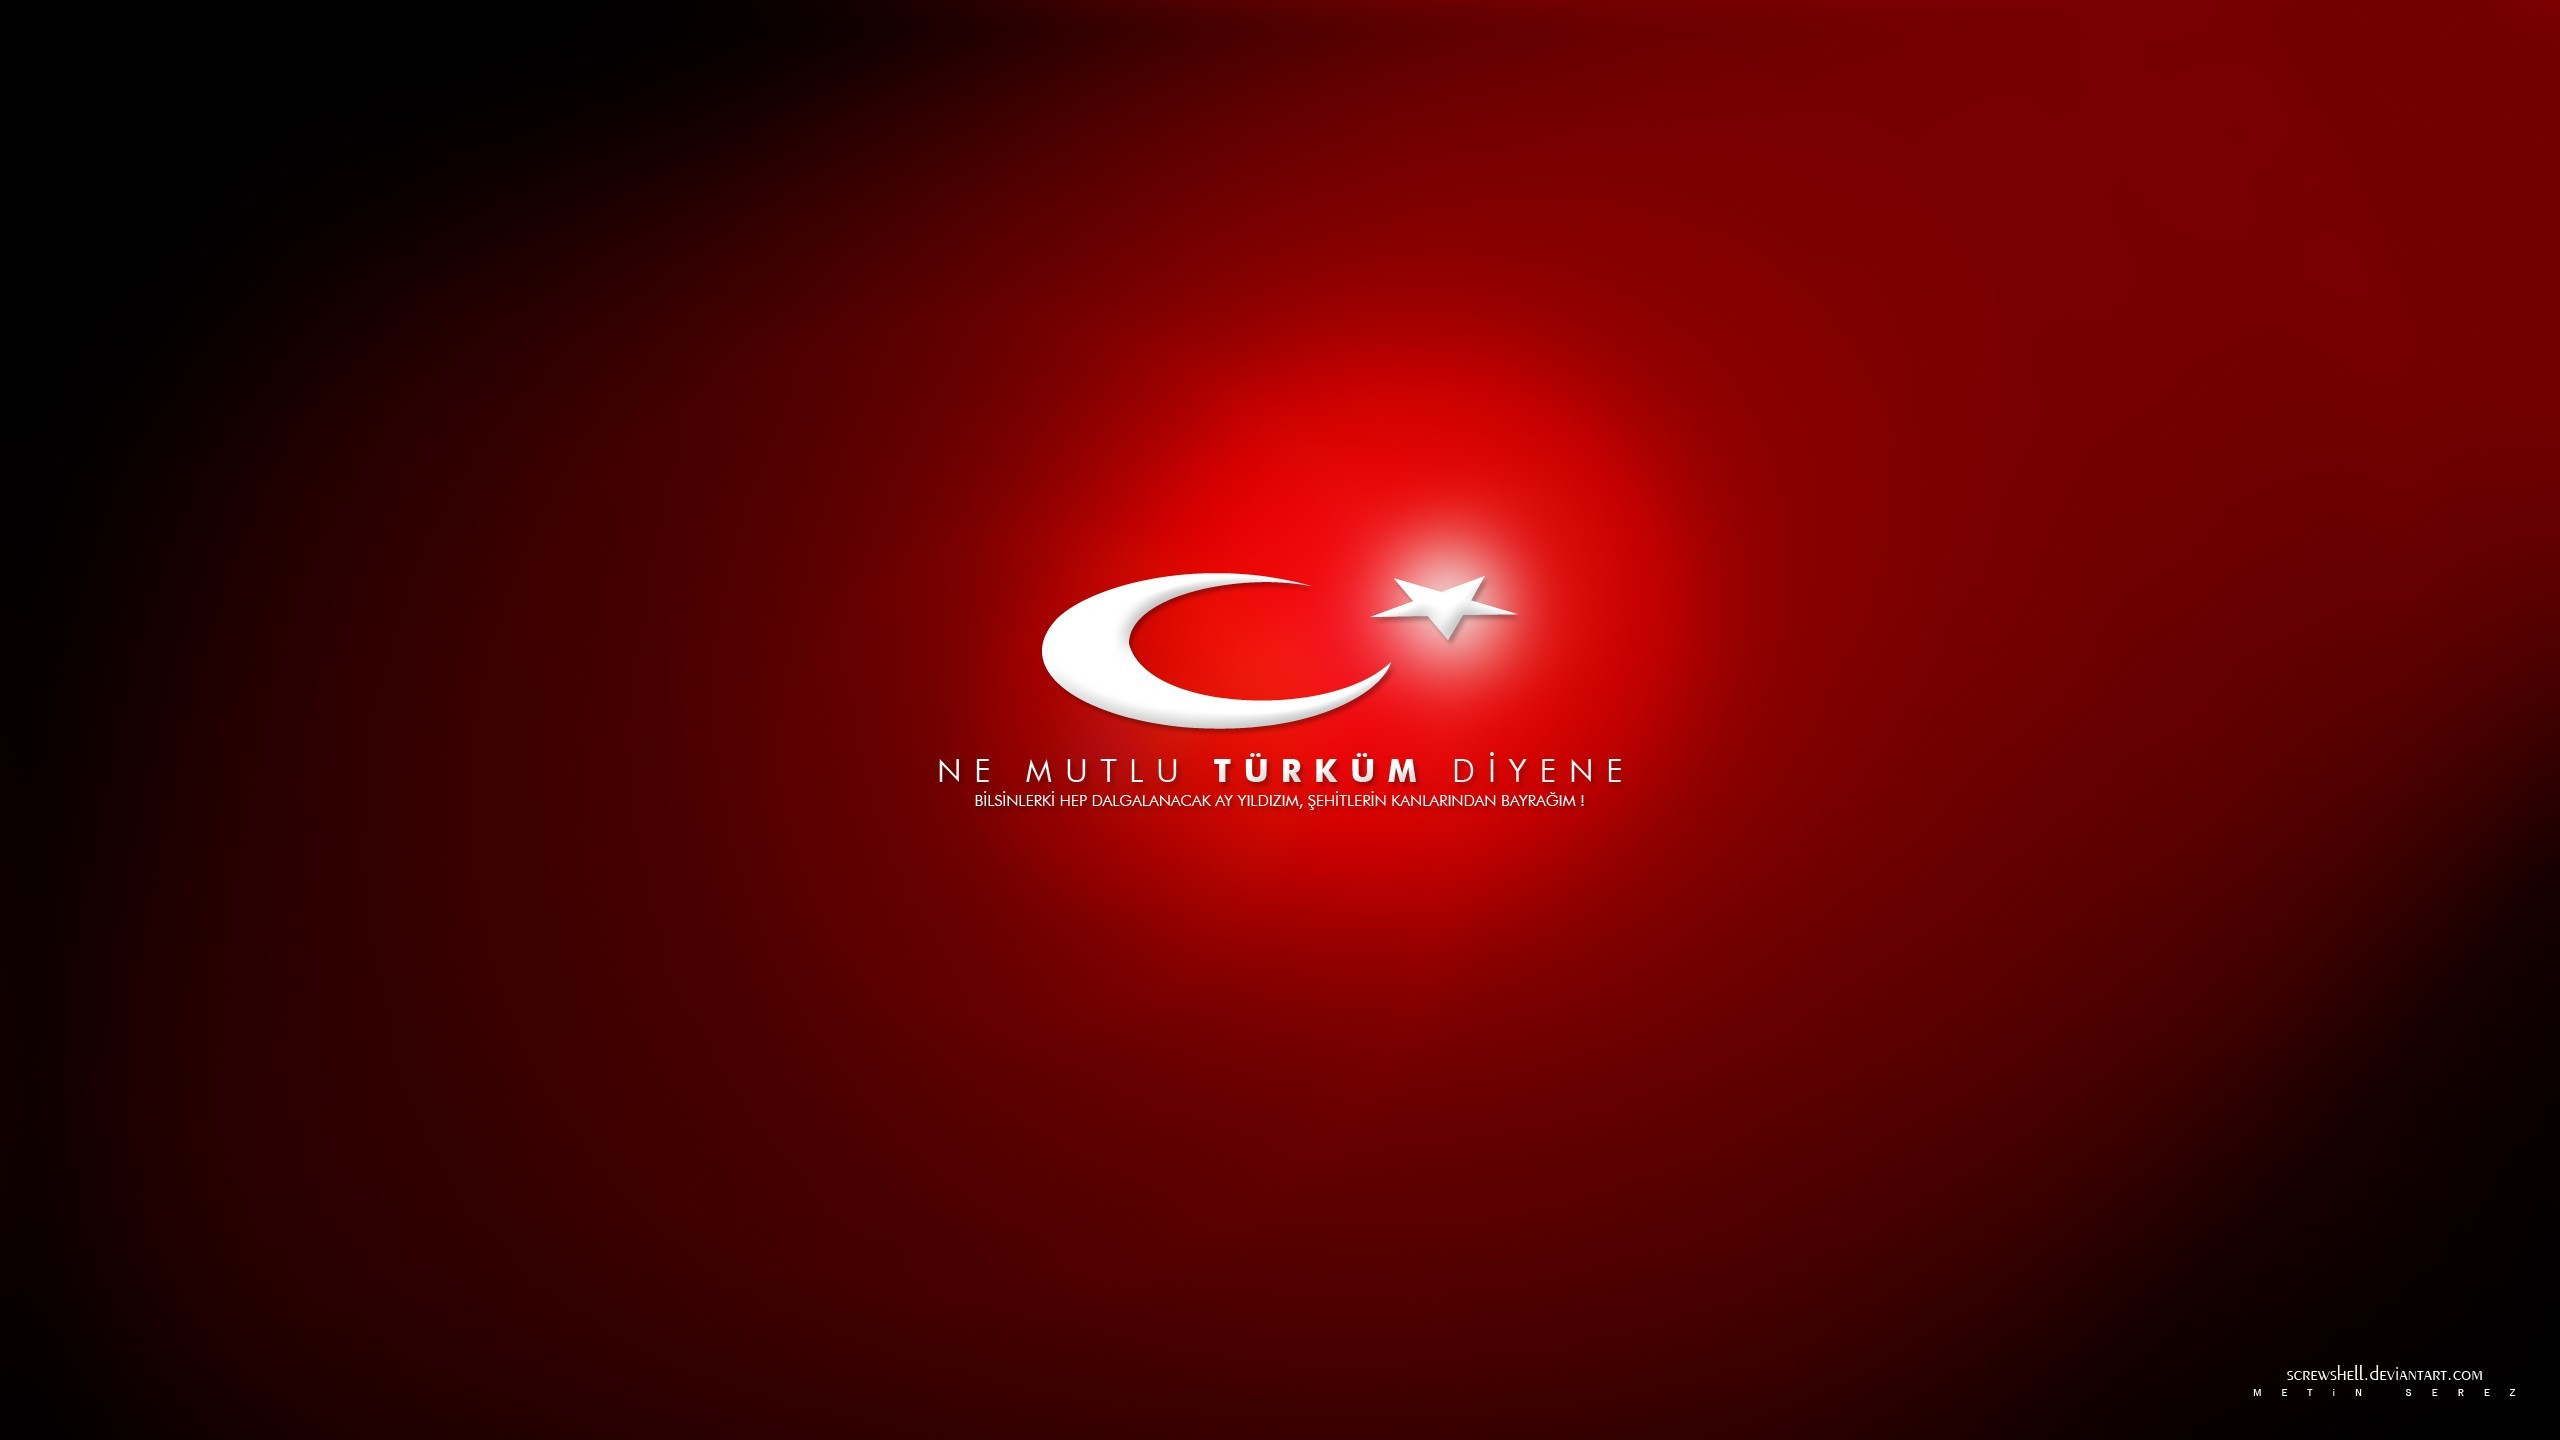 Flags Turkey turkish Ataturk moon and star